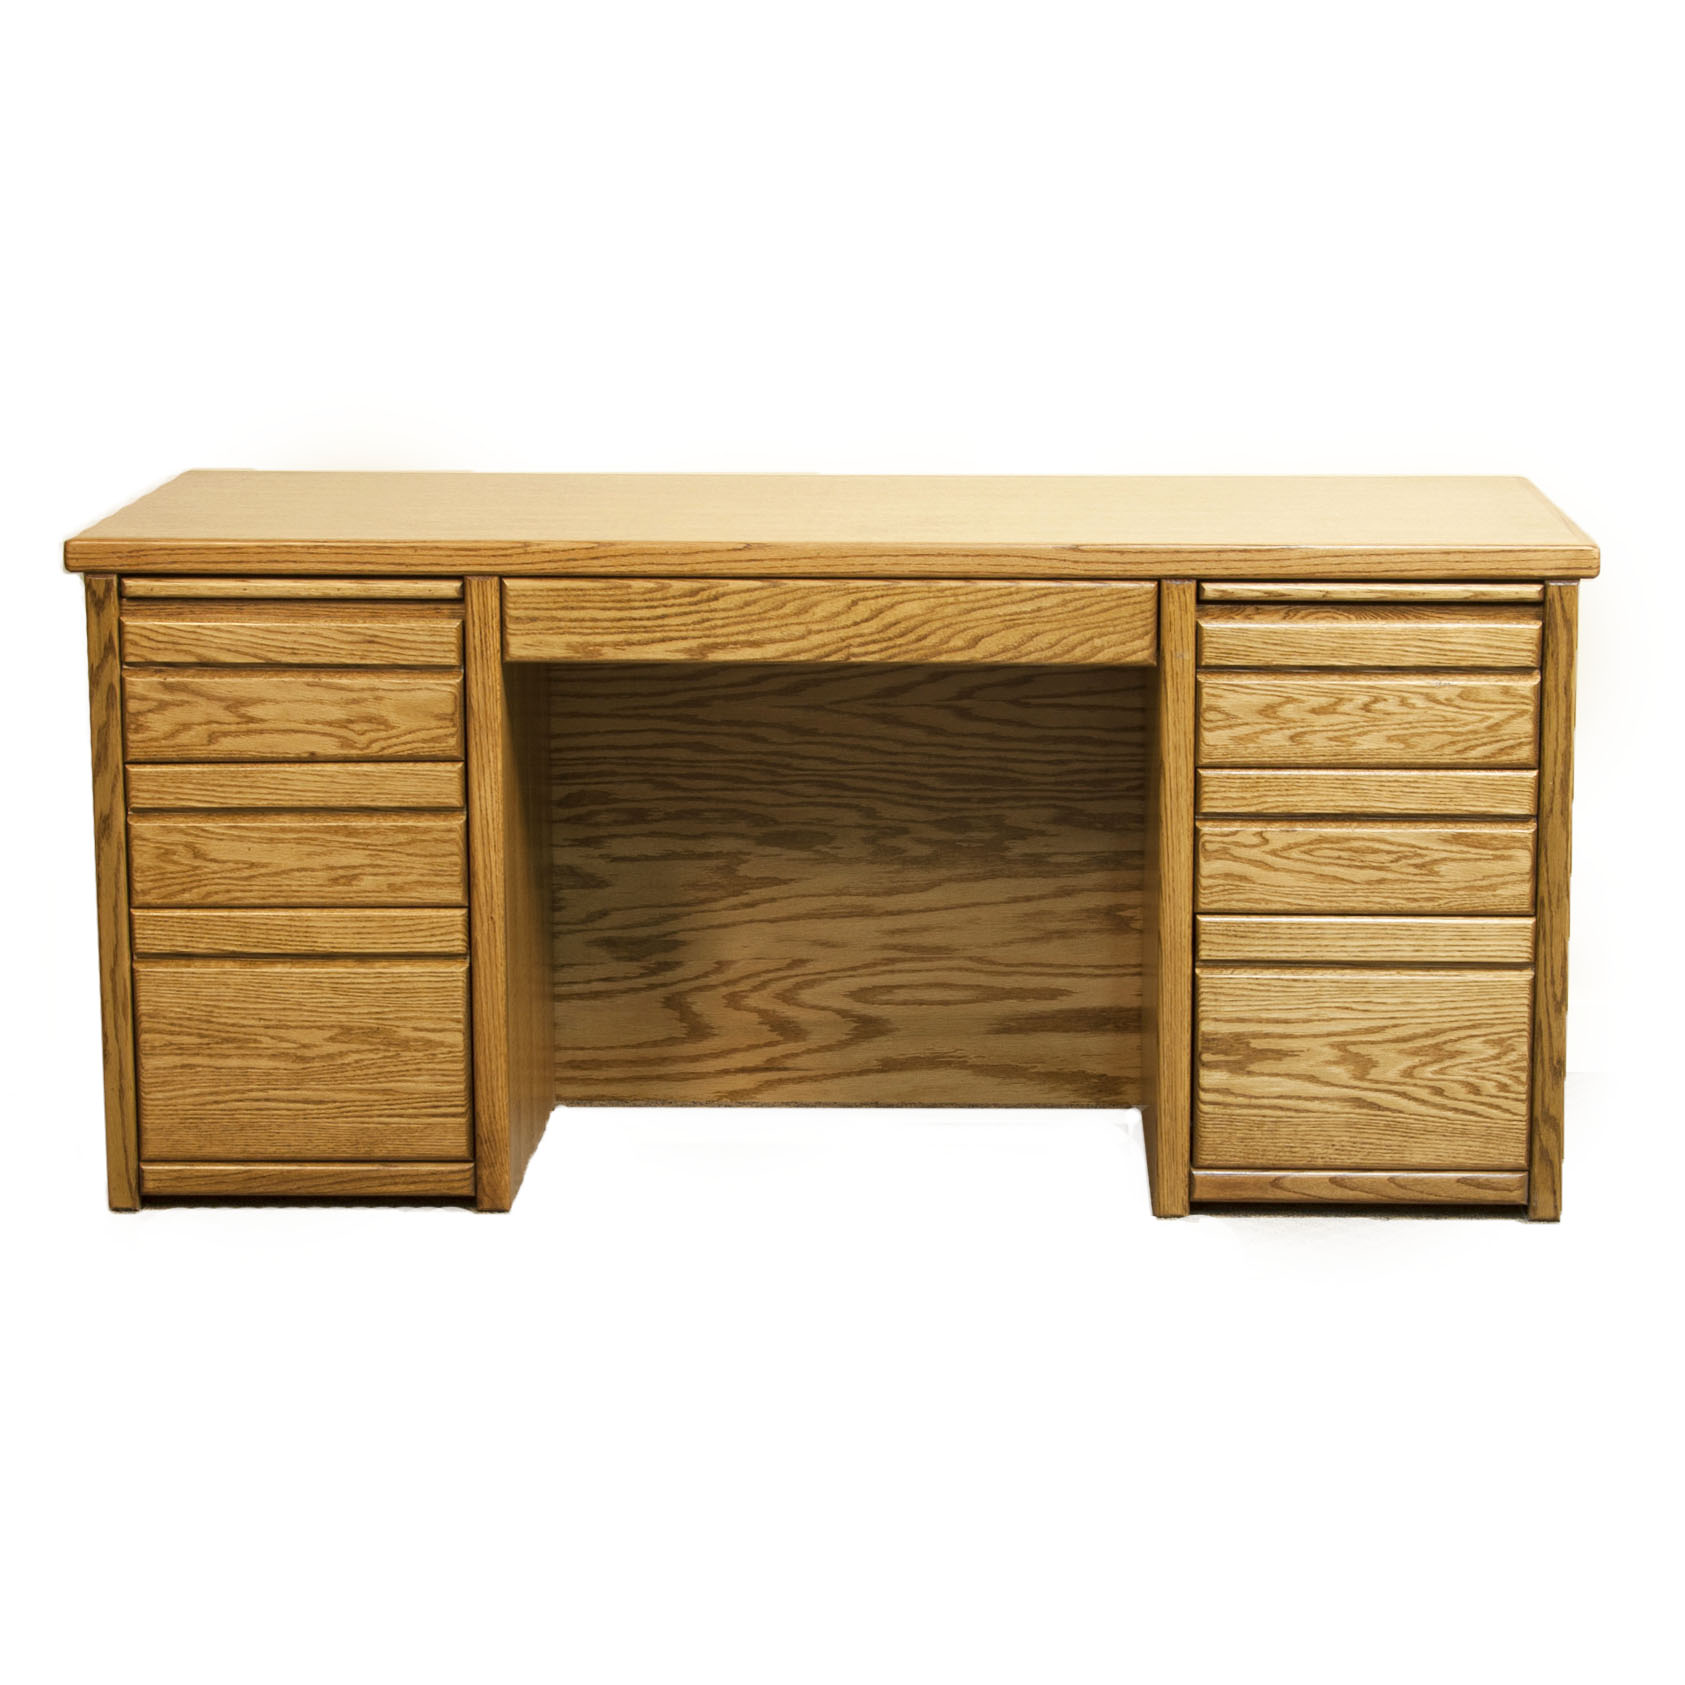 7-Drw Double Pedestal Desk